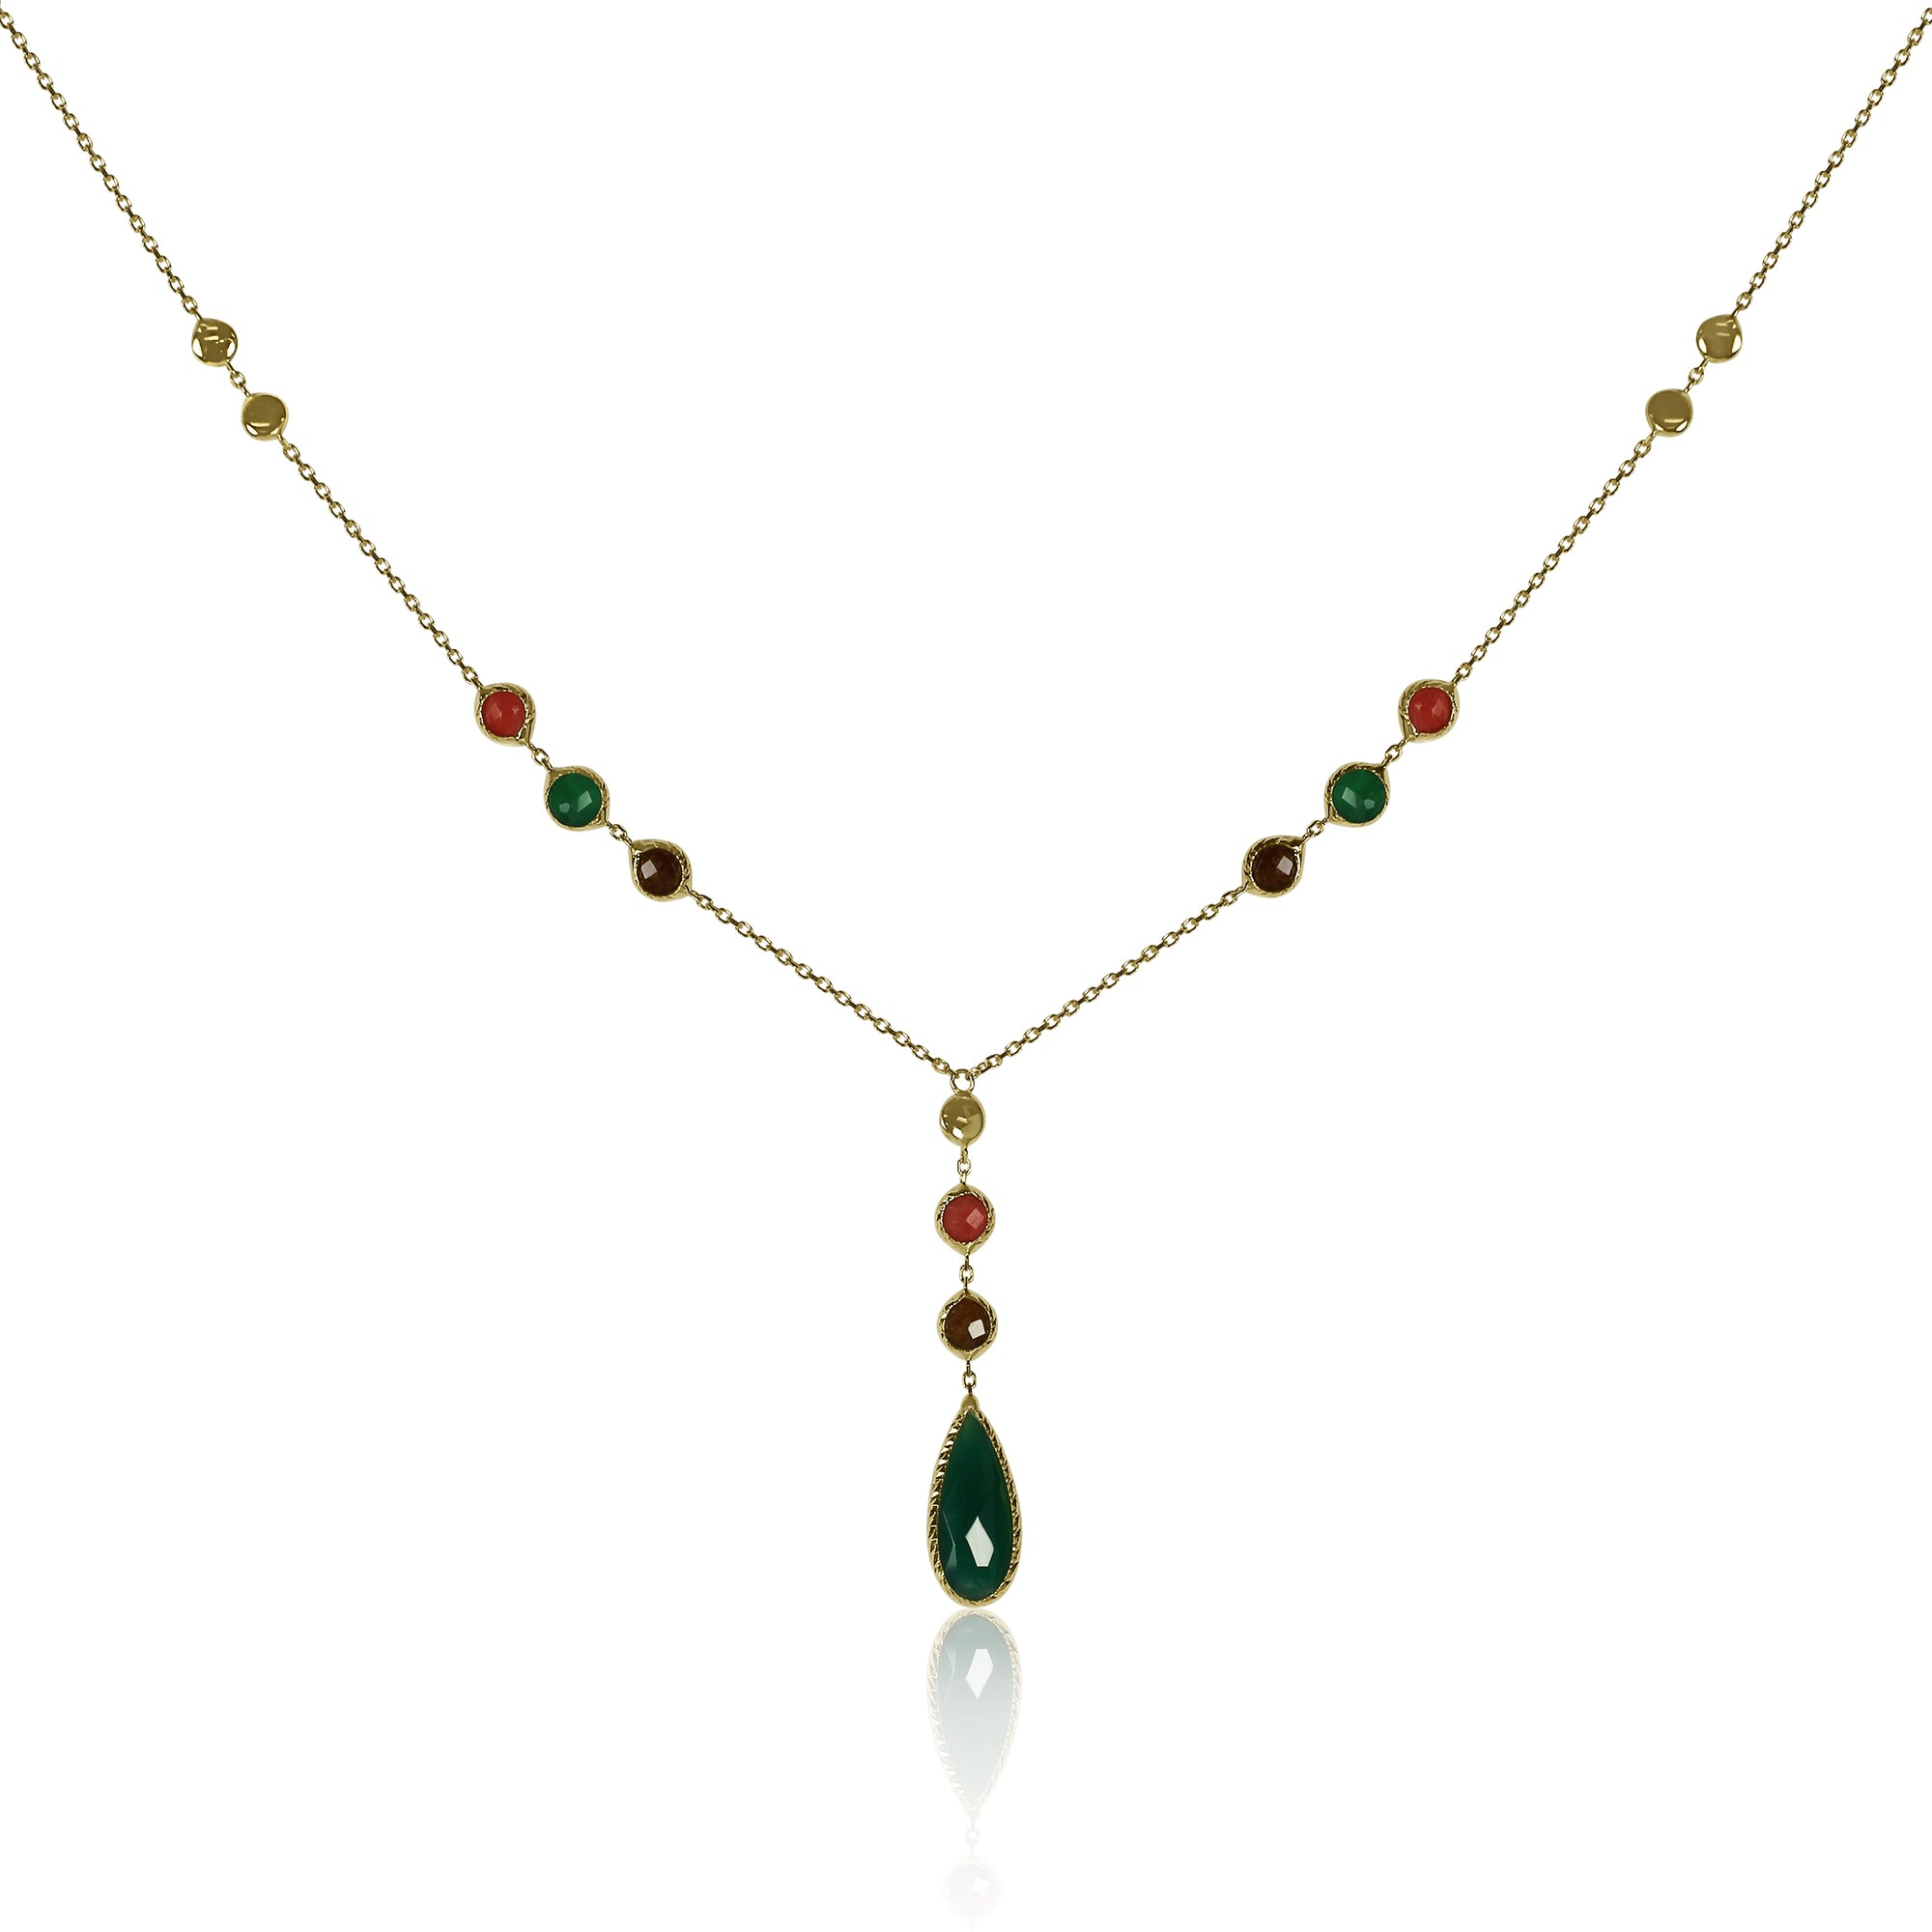 solitaire s w colombian stone il necklace jewels pendant emerald j r product birthstone natural fullxfull diamond